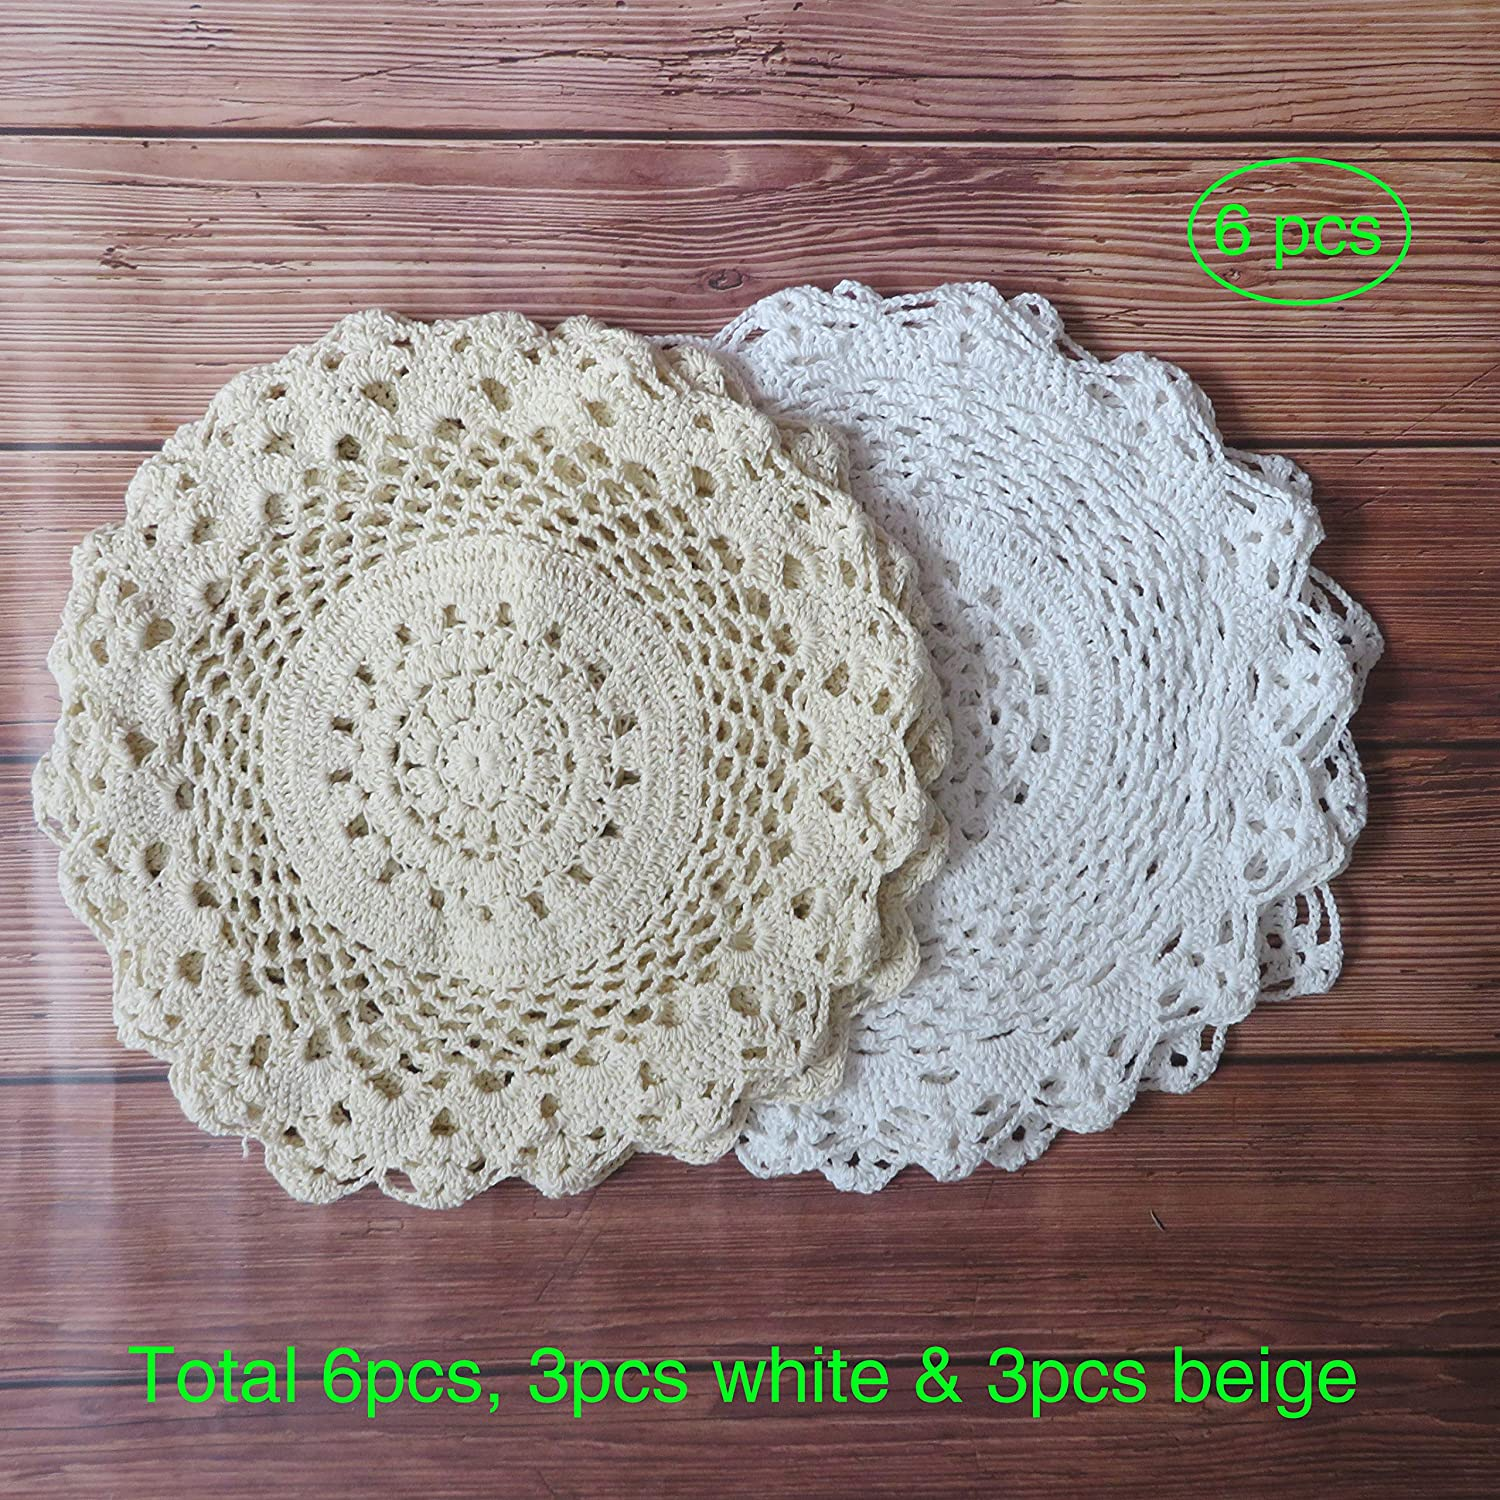 """Ouyatoyu 6pcs 12"""" Doilies Cloth Lace Crochet Doilies Place Mats for Kitchen Round Handmade Cotton Placemats for Glass Bowl Dish Dining Table, 3pcs White and 3pcs Beige"""